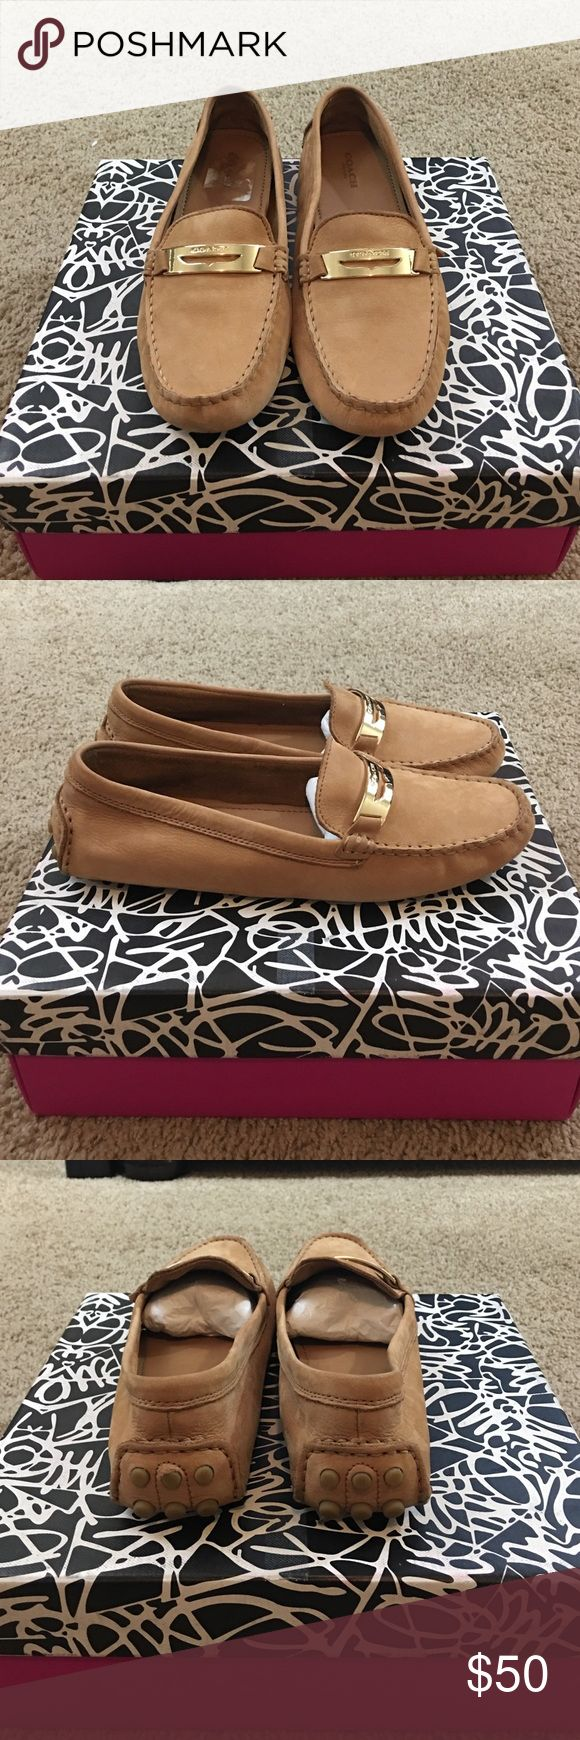 Coach camel suede loafer size 8.5 Coach camel suede loafer size 8.5 in good used condition Coach Shoes Flats & Loafers